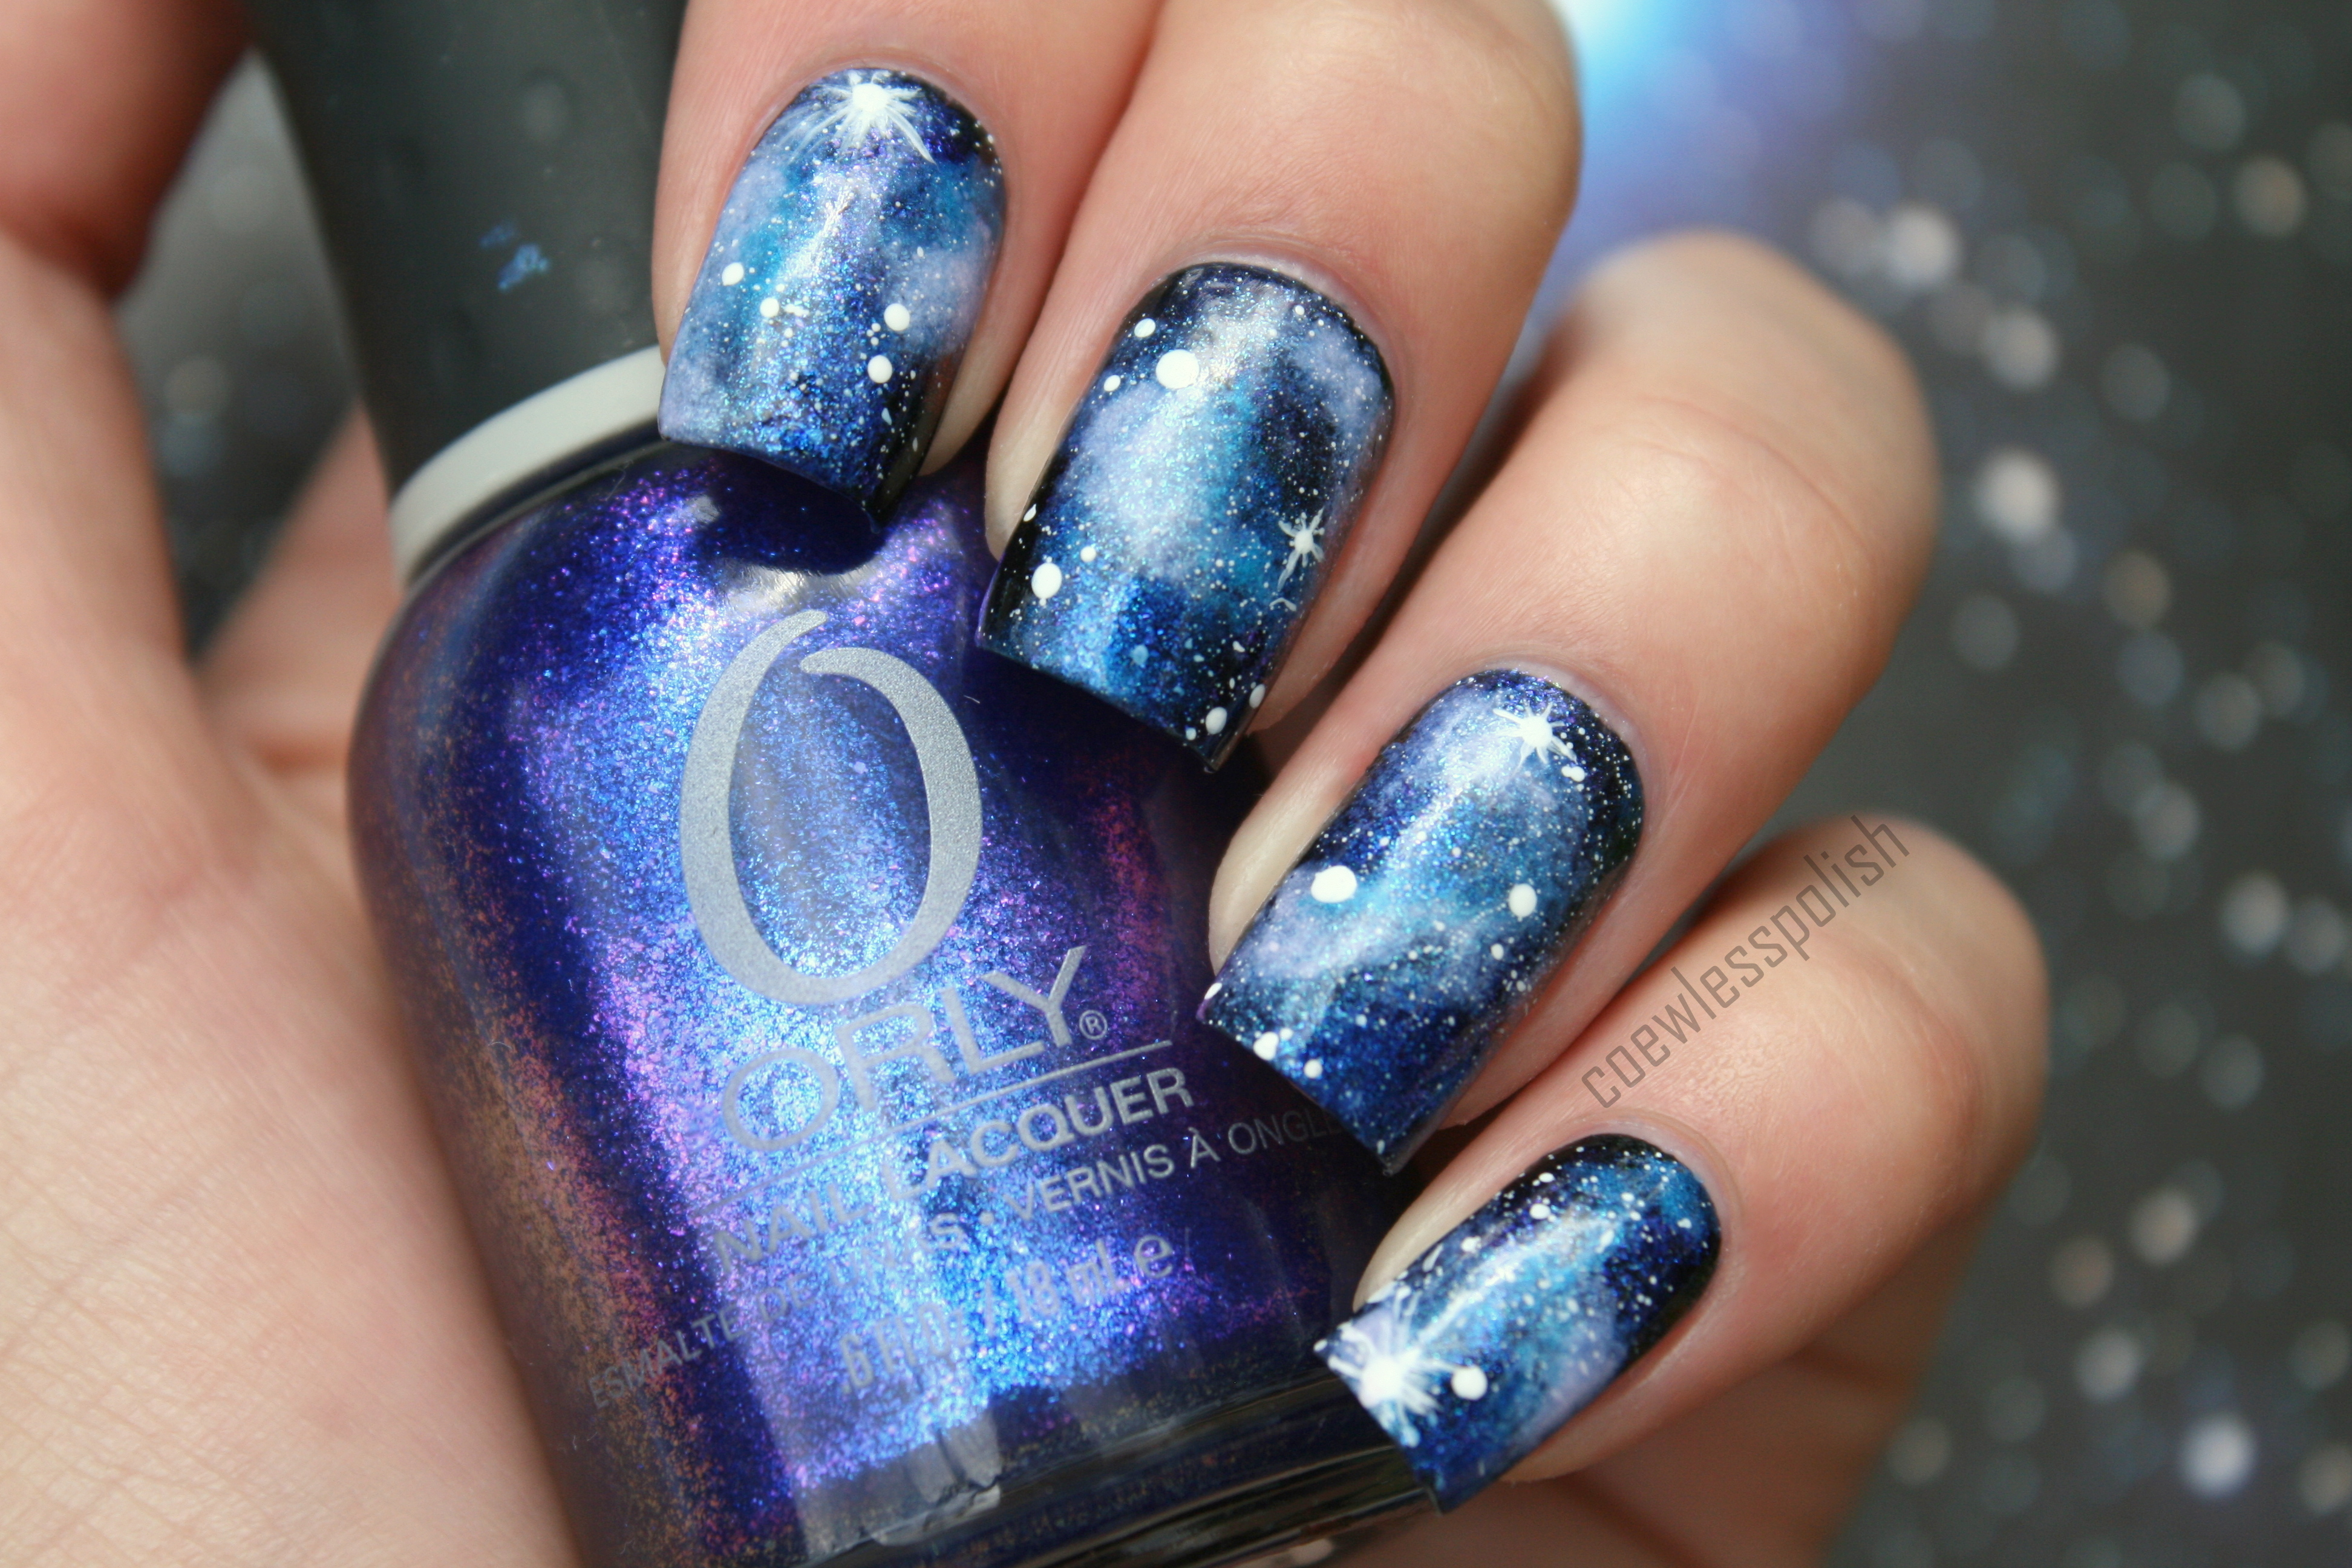 Galaxy nail art nails collection 15 wallpapers diy easy galaxy nail art tutorial sponge nails youtube solutioingenieria Images